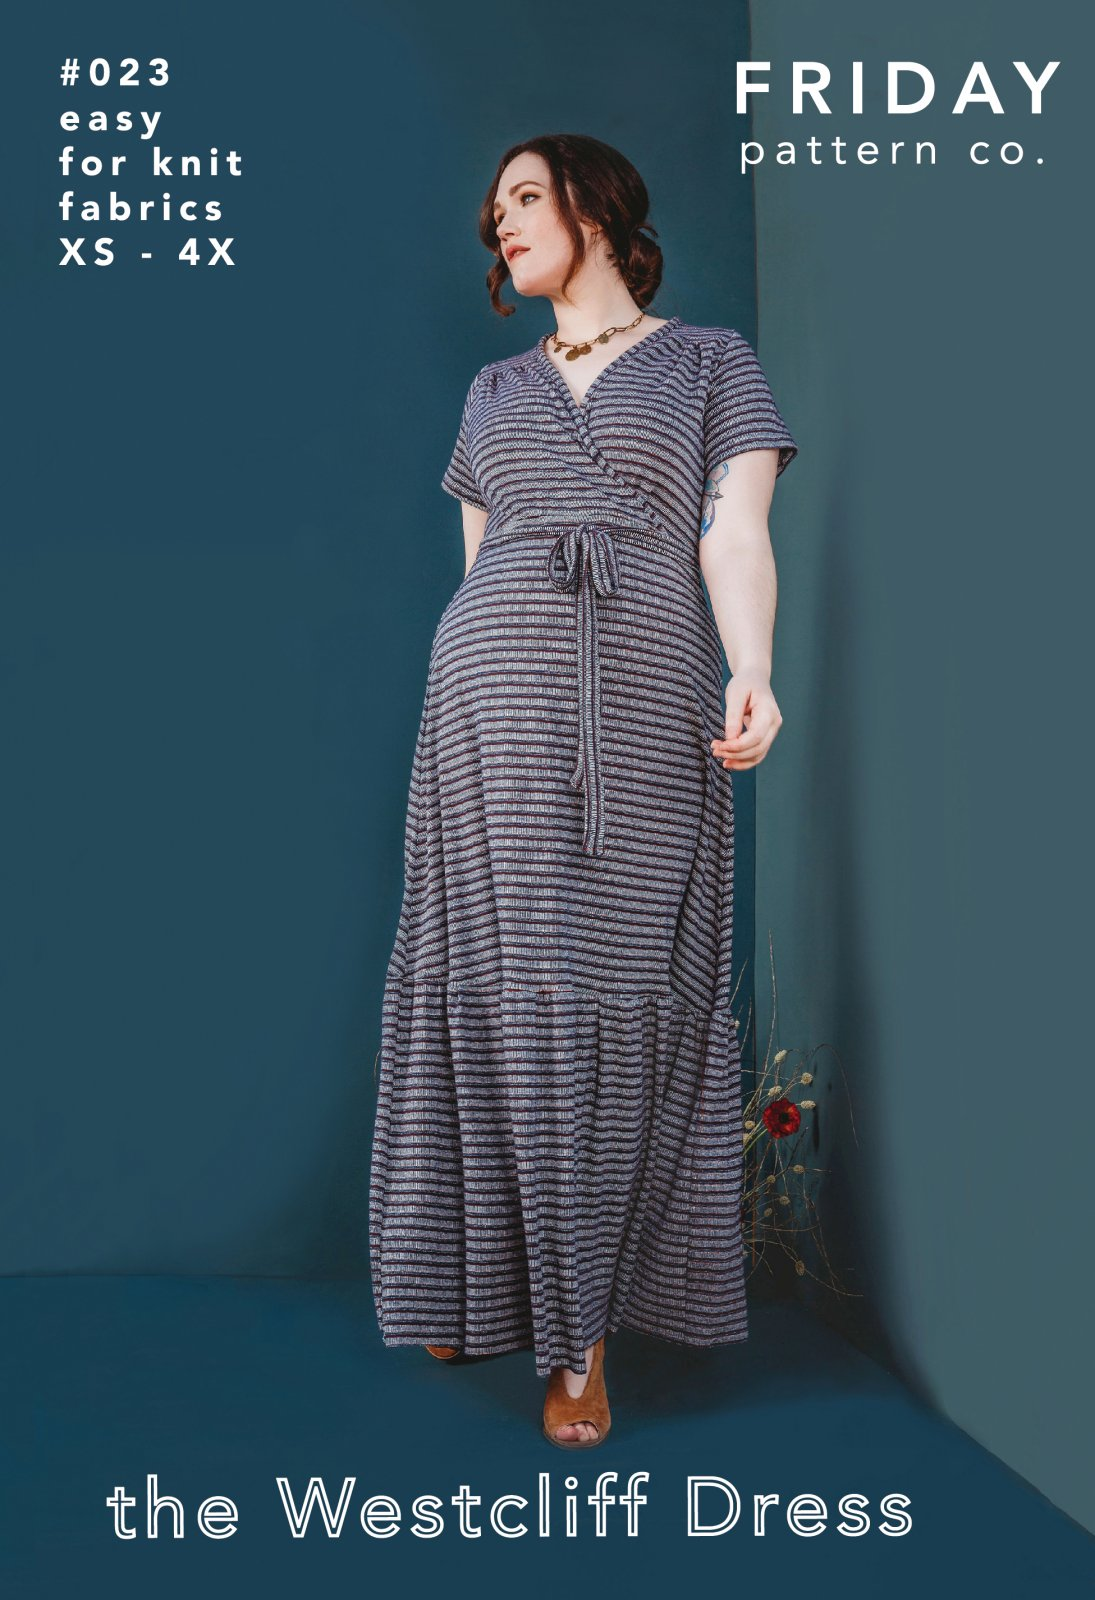 Westcliff Dress - Friday Pattern Co